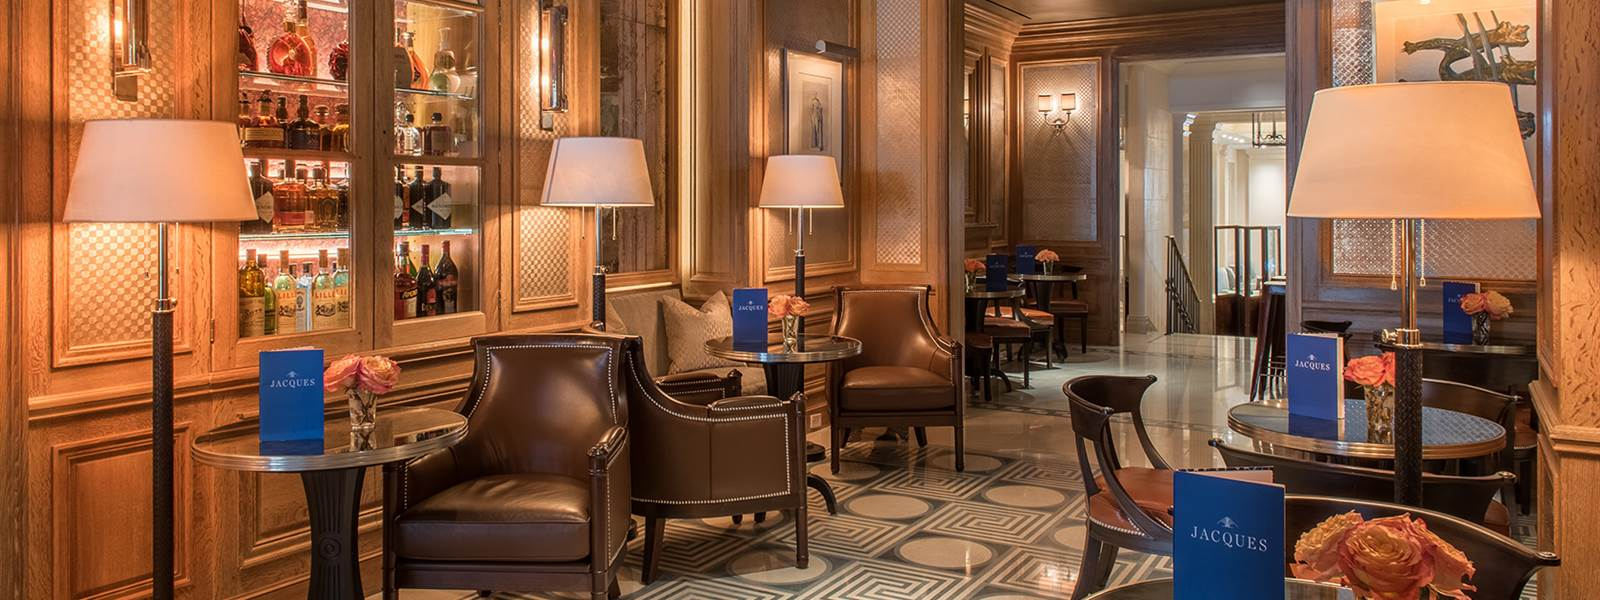 Best Hotel Bars Nyc Jacques Bar The Lowell Hotel